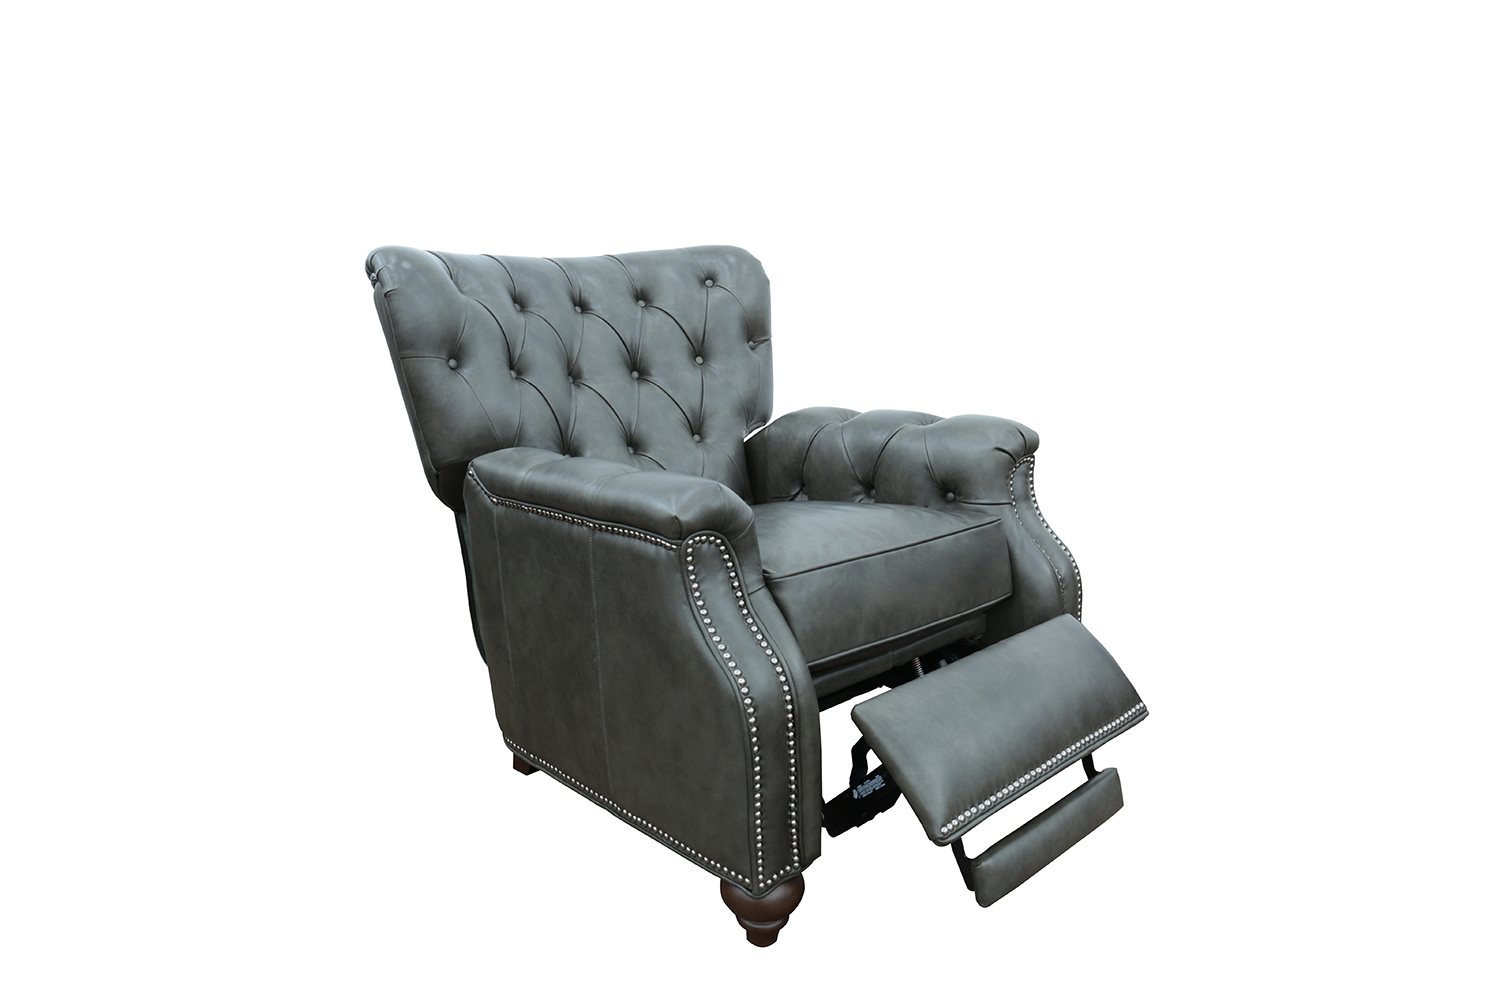 Barcalounger Lombard Recliner Chair - Ashford Graphite/All Leather